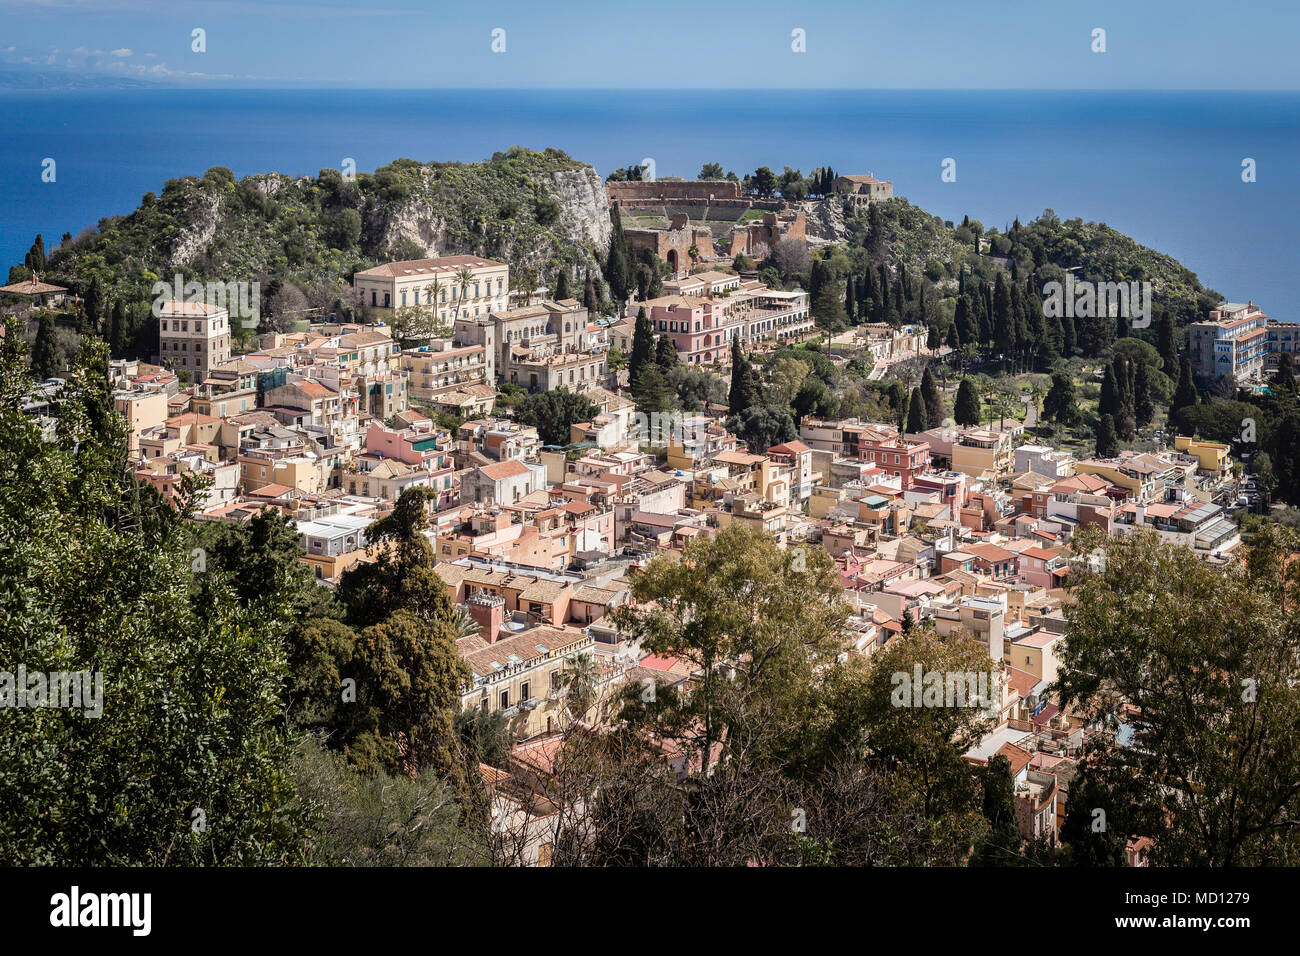 Town of Taormina with Ionian Sea in the background, Sicily. - Stock Image